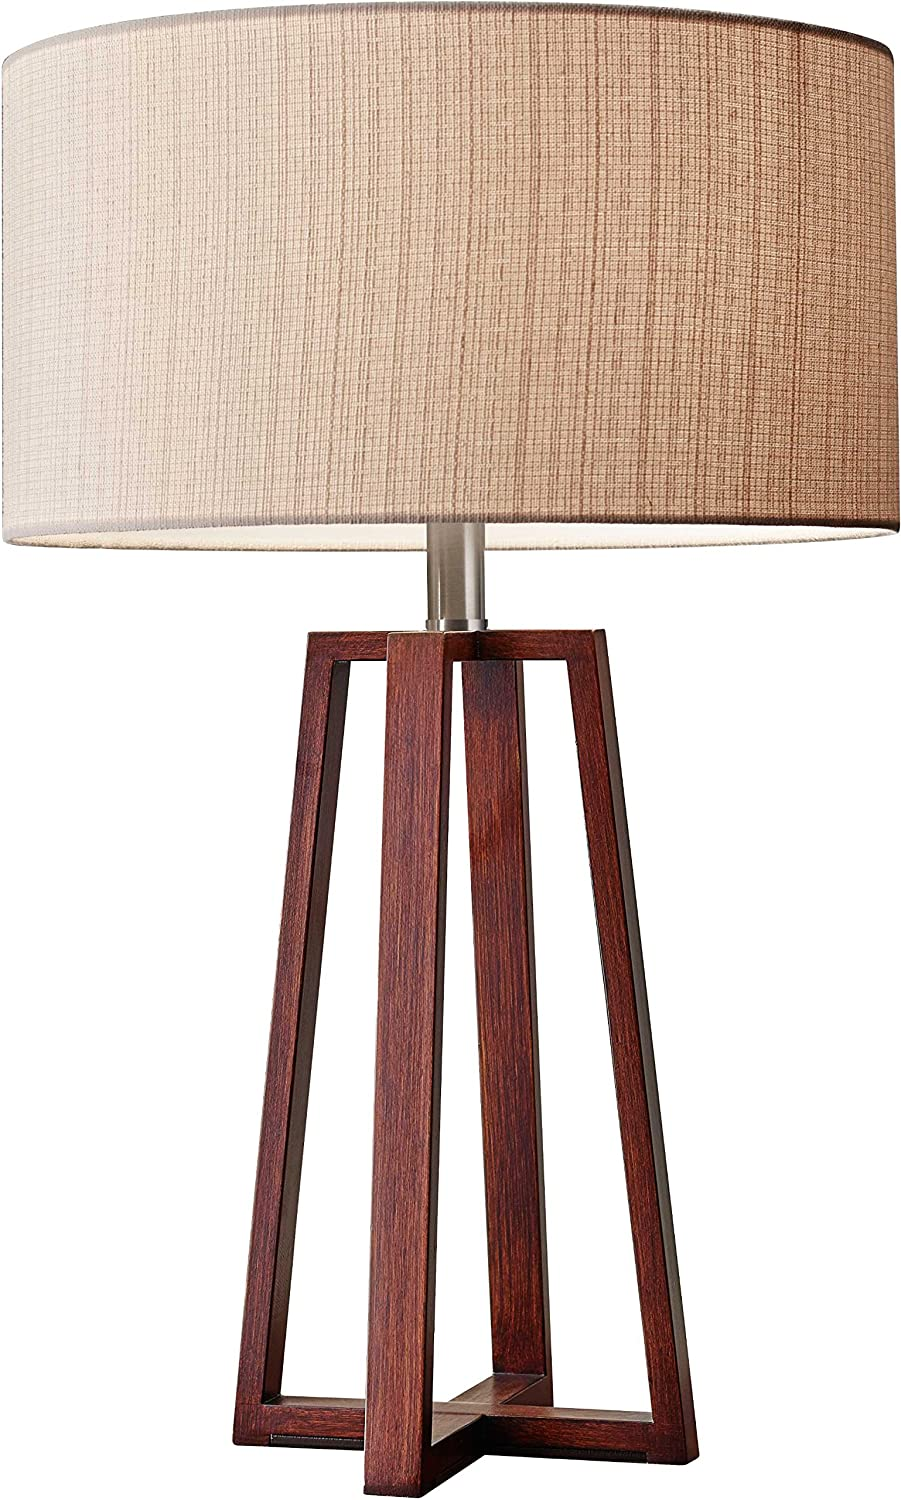 Amazon adesso 1503 15 quinn 2375 table lamp walnut smart amazon adesso 1503 15 quinn 2375 table lamp walnut smart outlet compatible home improvement geotapseo Image collections